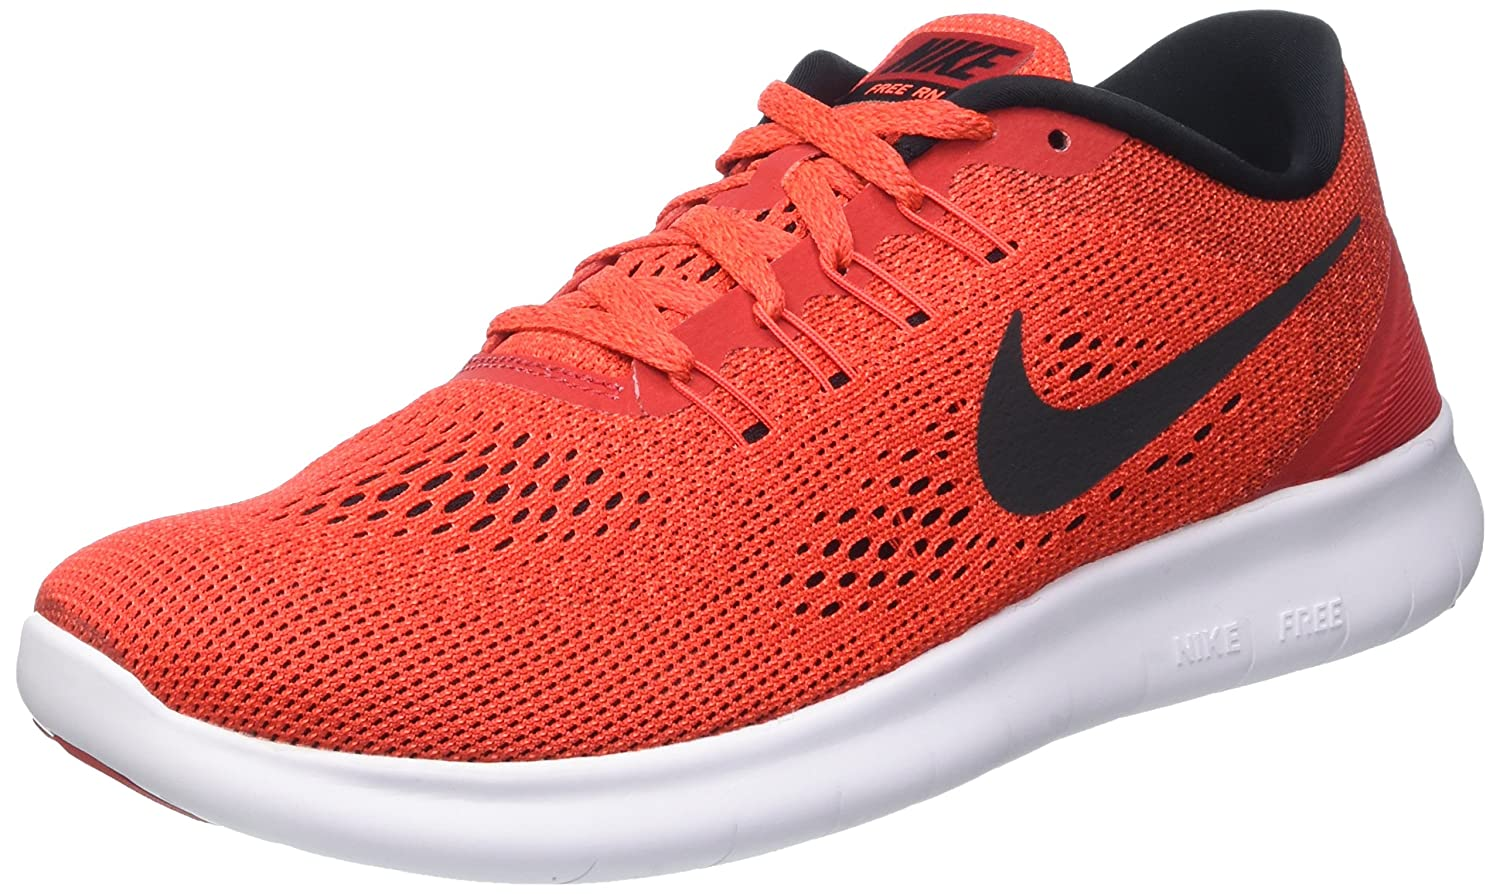 867365f52d610a Nike Men s Free Rn Boat Shoes  Buy Online at Low Prices in India - Amazon.in